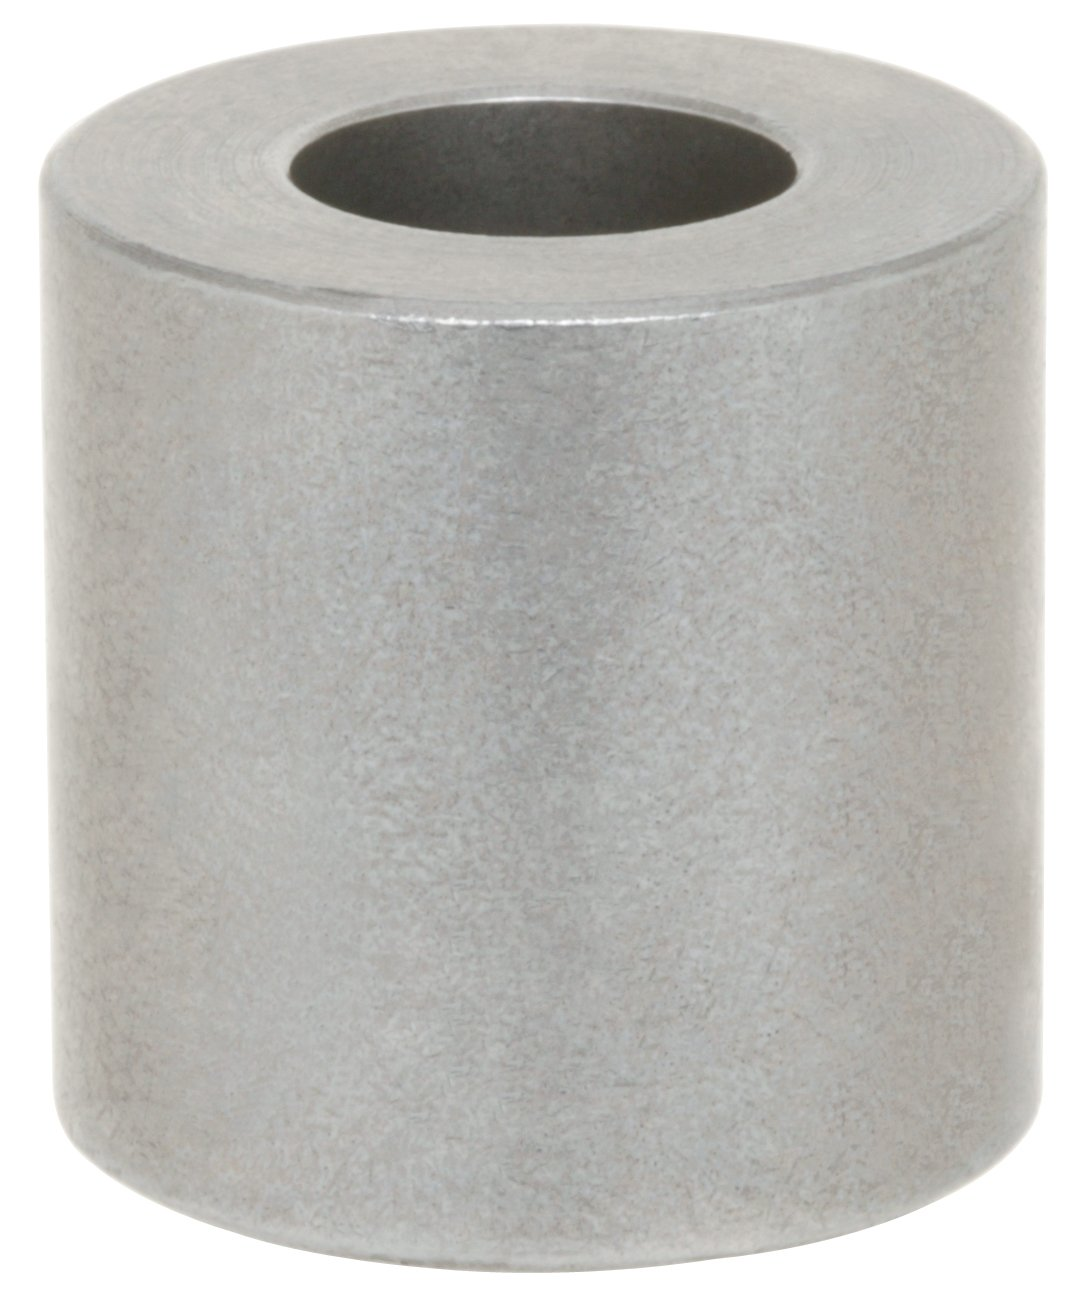 Woodstock W1163 1/2 by 1 by 1-Inch Spacer